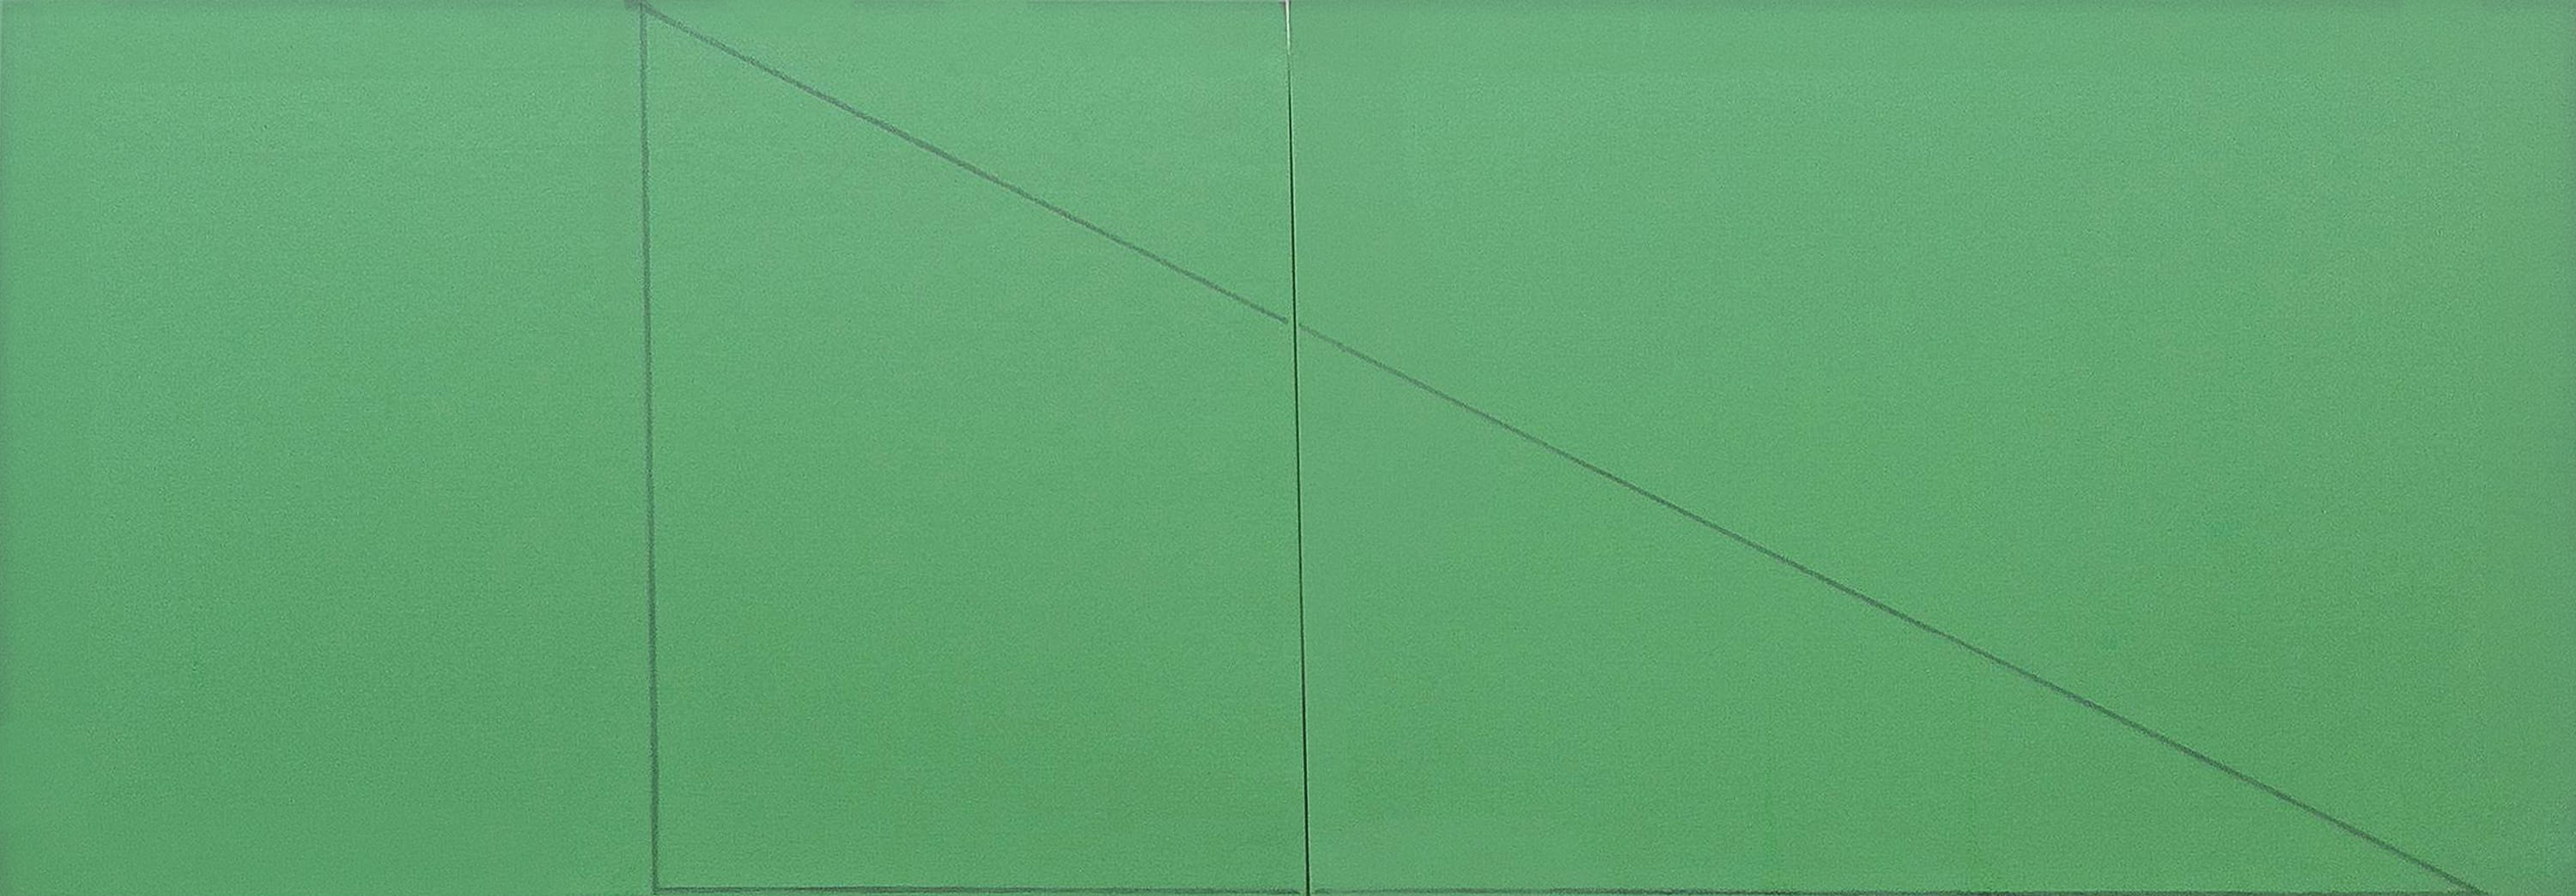 A Triangle Within Two Rectangles Green by Robert Mangold